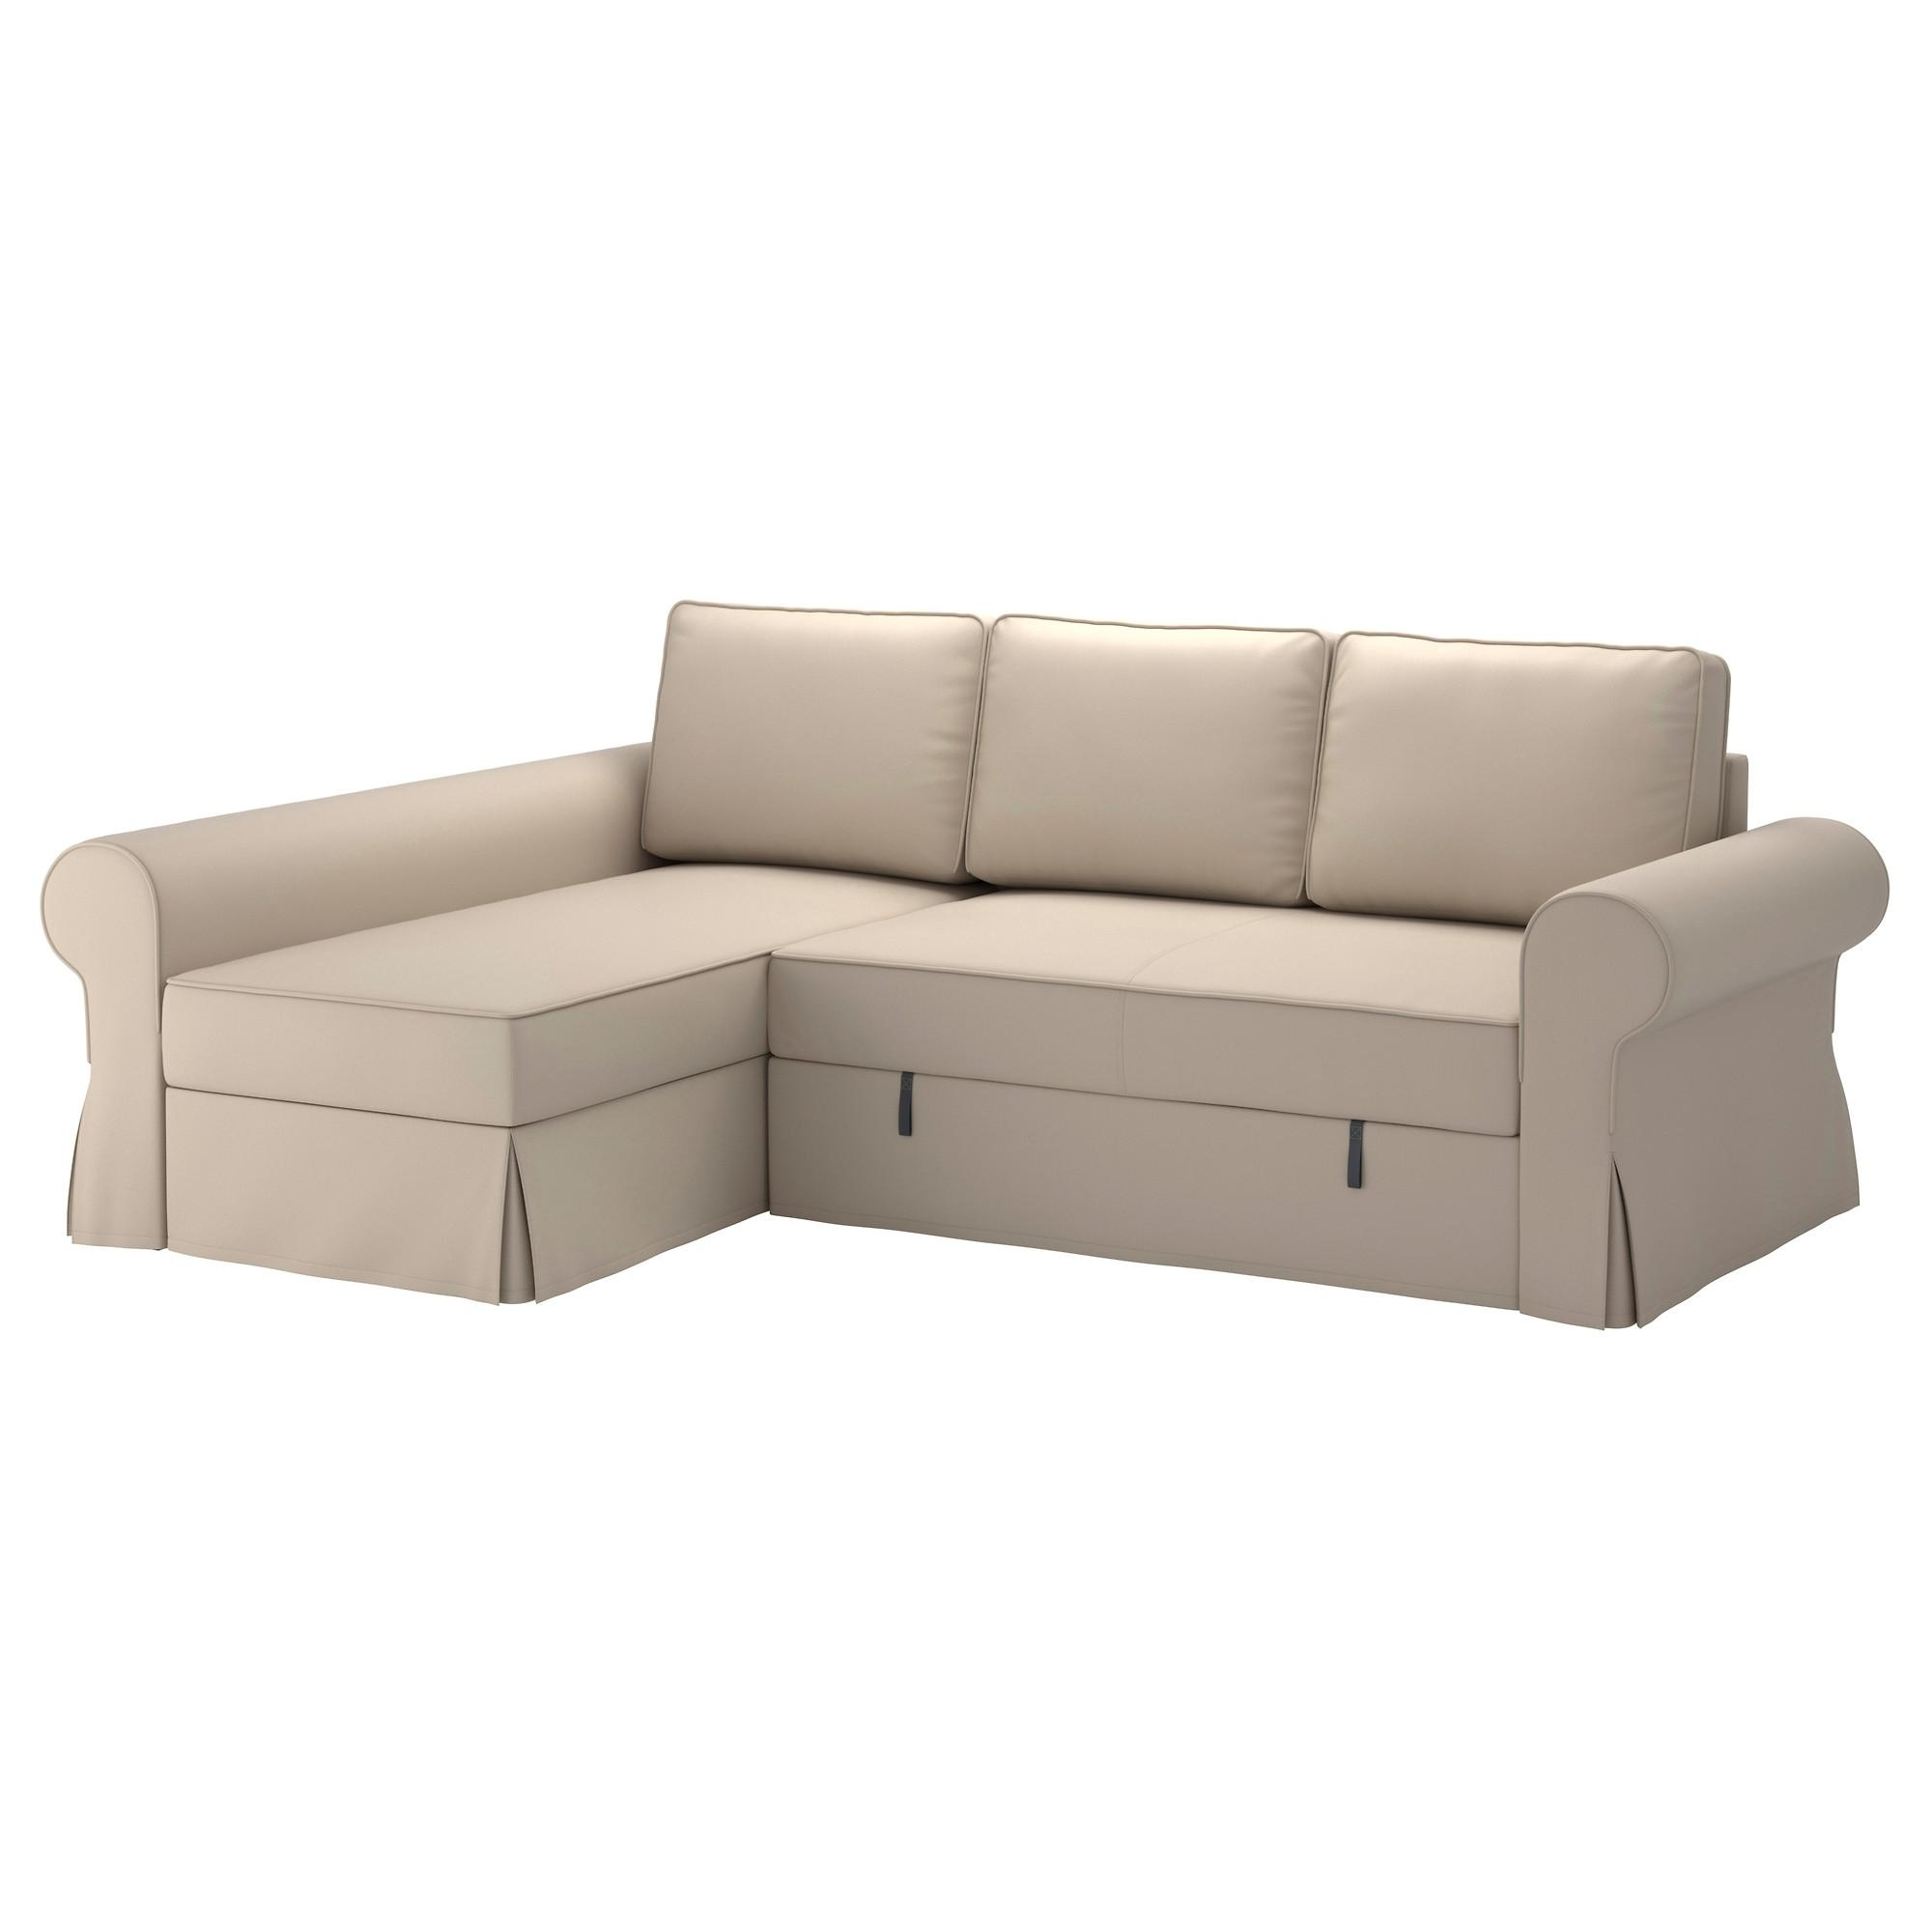 20 photos ikea chaise lounge sofa sofa ideas for Chaise longue lockheed lounge